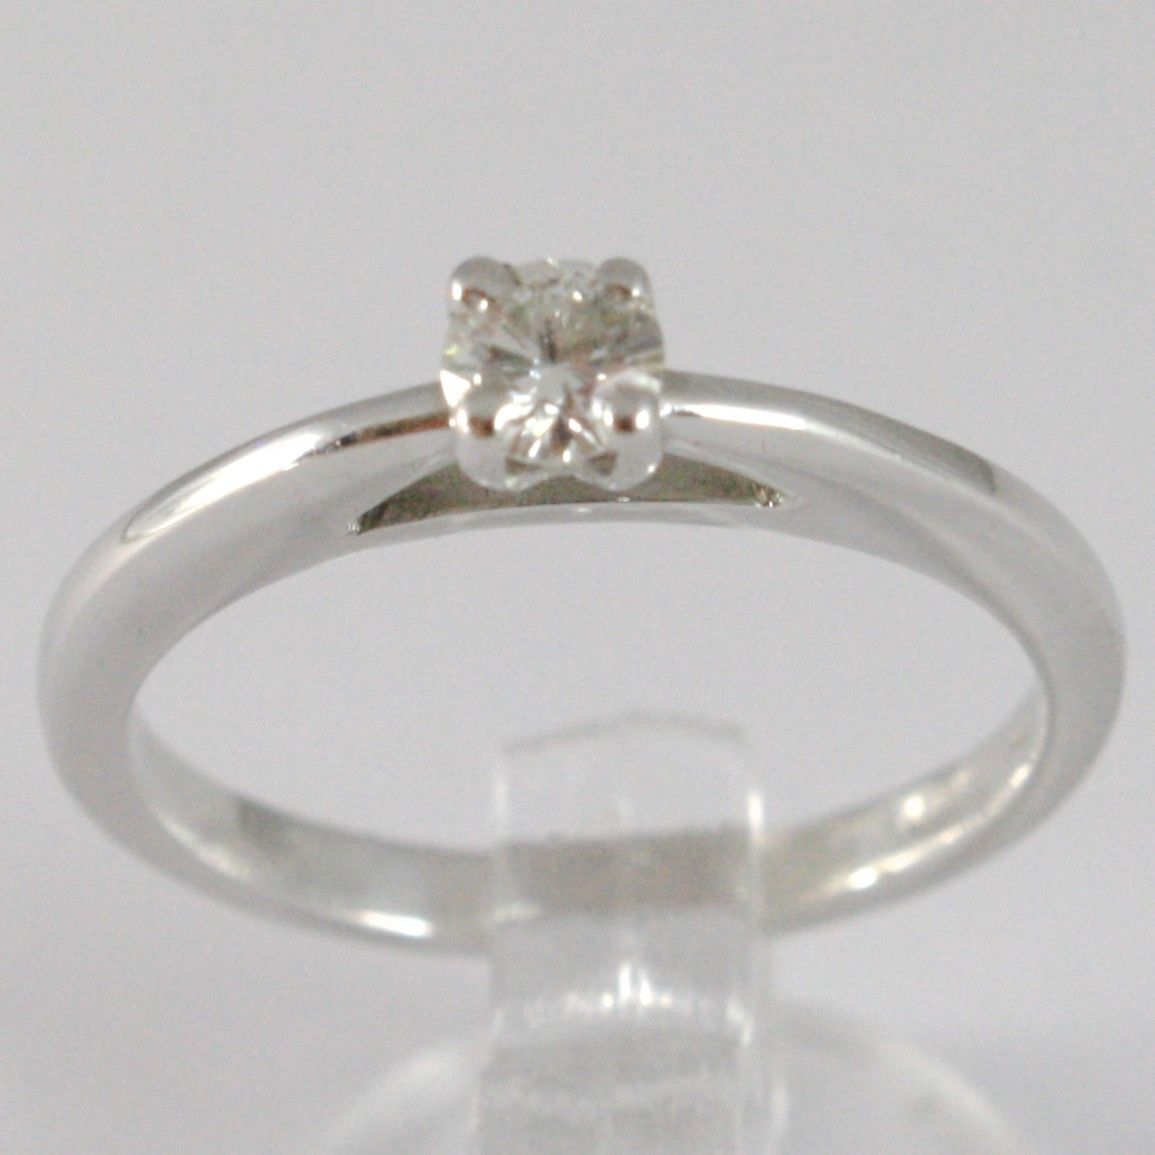 WHITE GOLD RING 750 18K, SOLITAIRE, BEZEL SETTING RAISED, DIAMOND CARAT 0.20